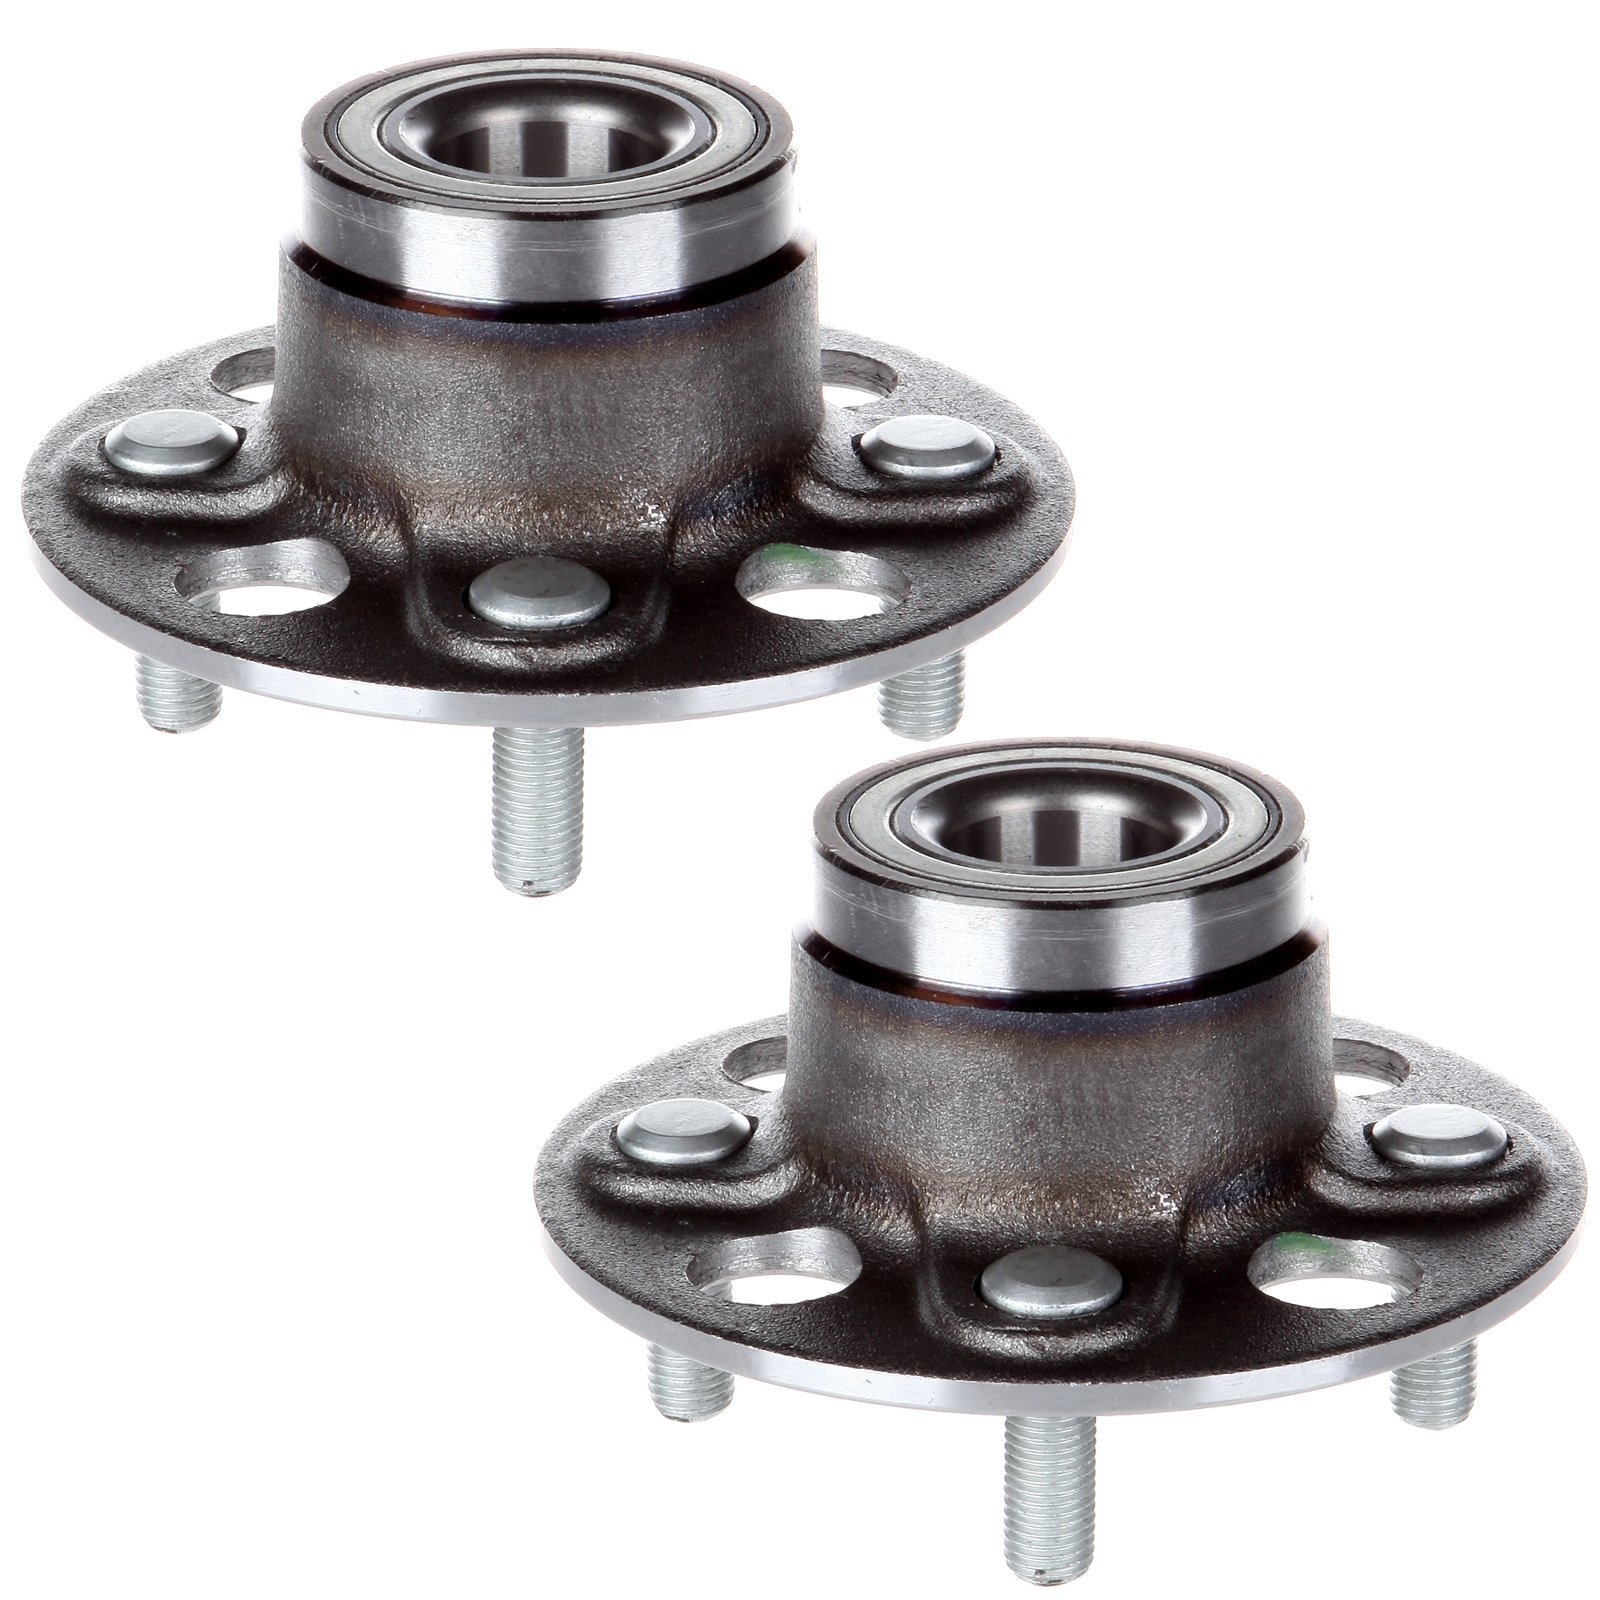 ECCPP Pair of 2 New Complete Rear Wheel Hub Bearing Assembly 4 Lugs for 2001-2005 Honda Civic 512174x2